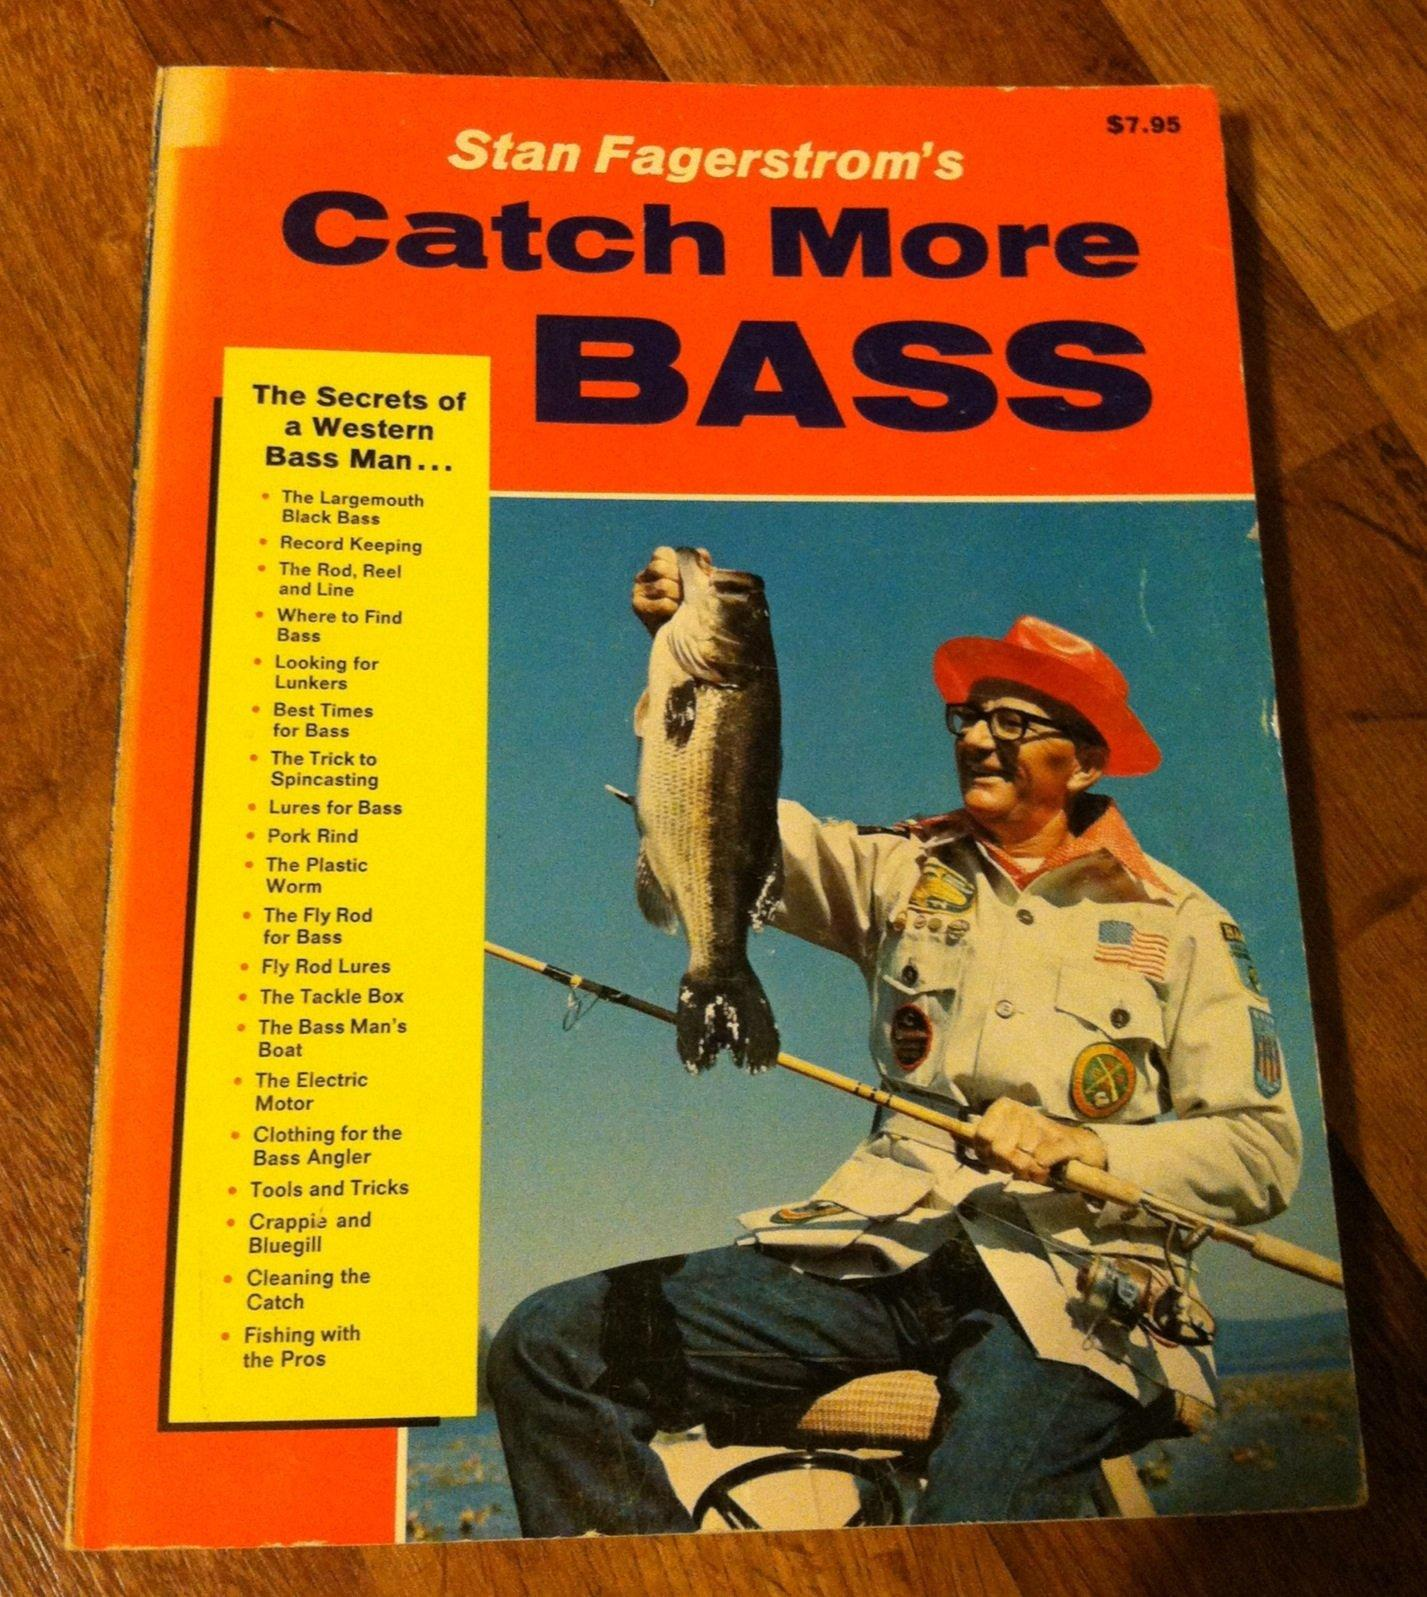 fagerstrom-catch-more-bass.jpg